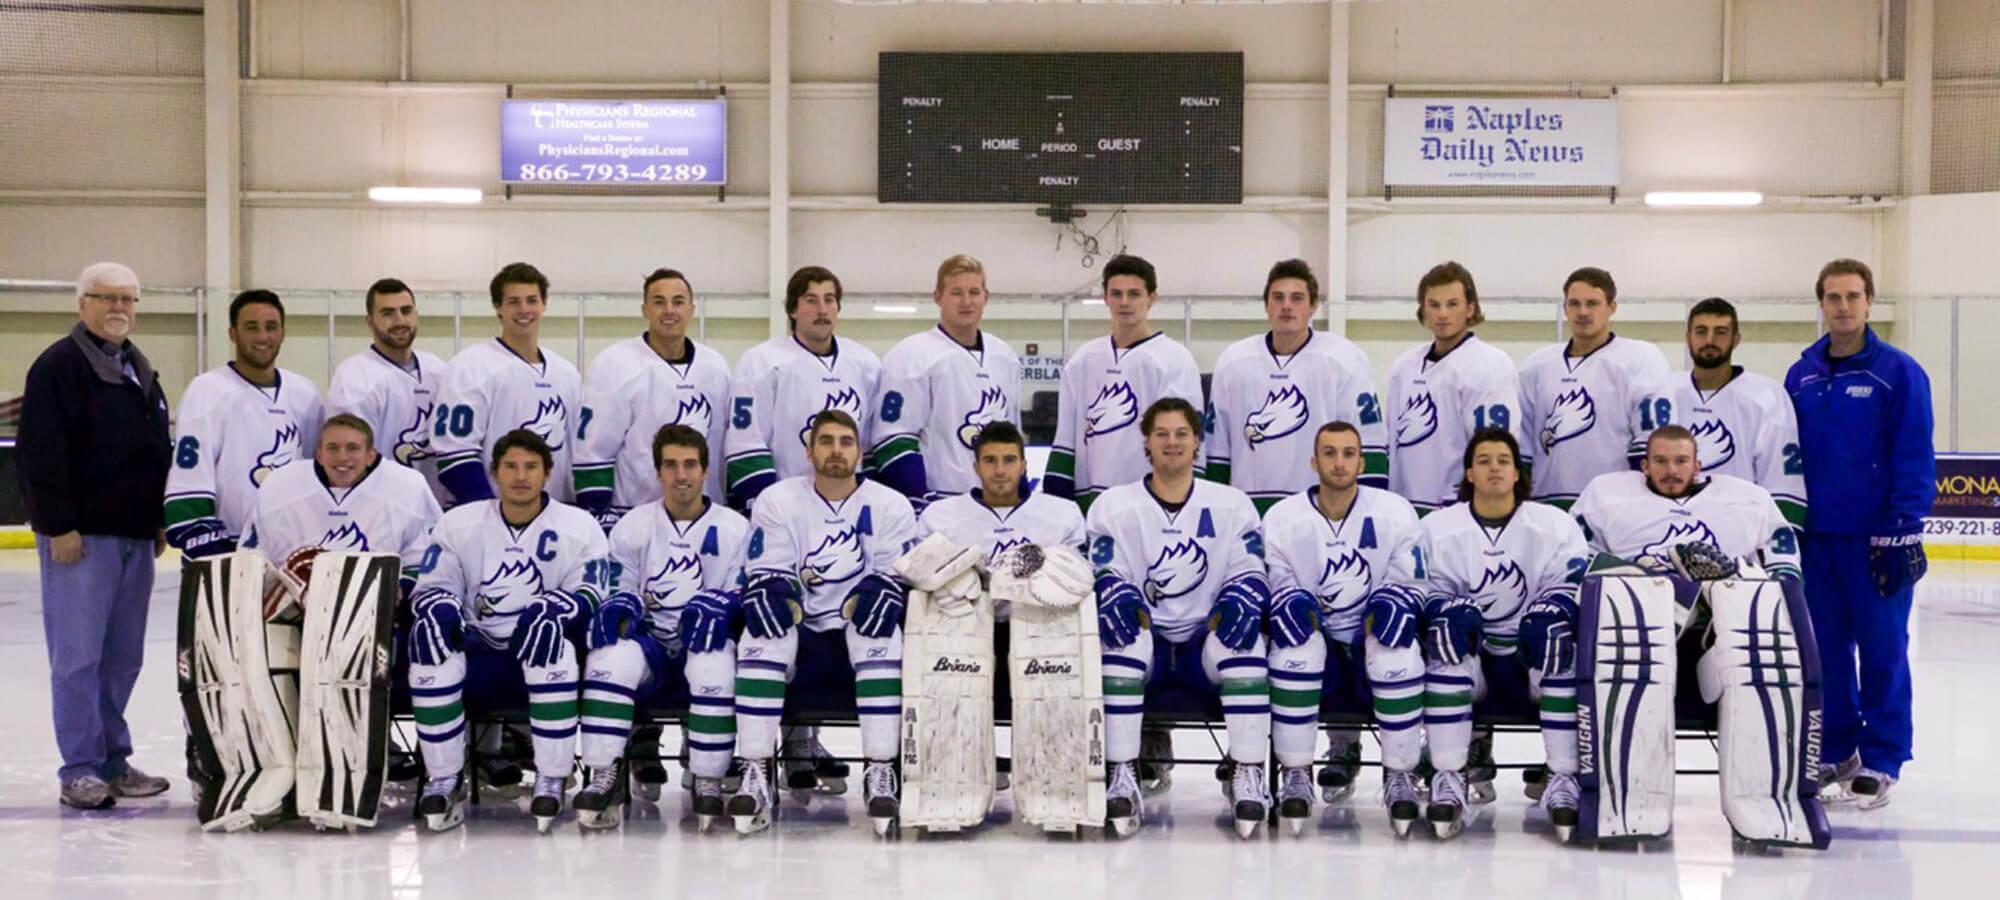 FGCU Division II hockey blows by Liberty to claim 2016 ACHA D2 National Championship